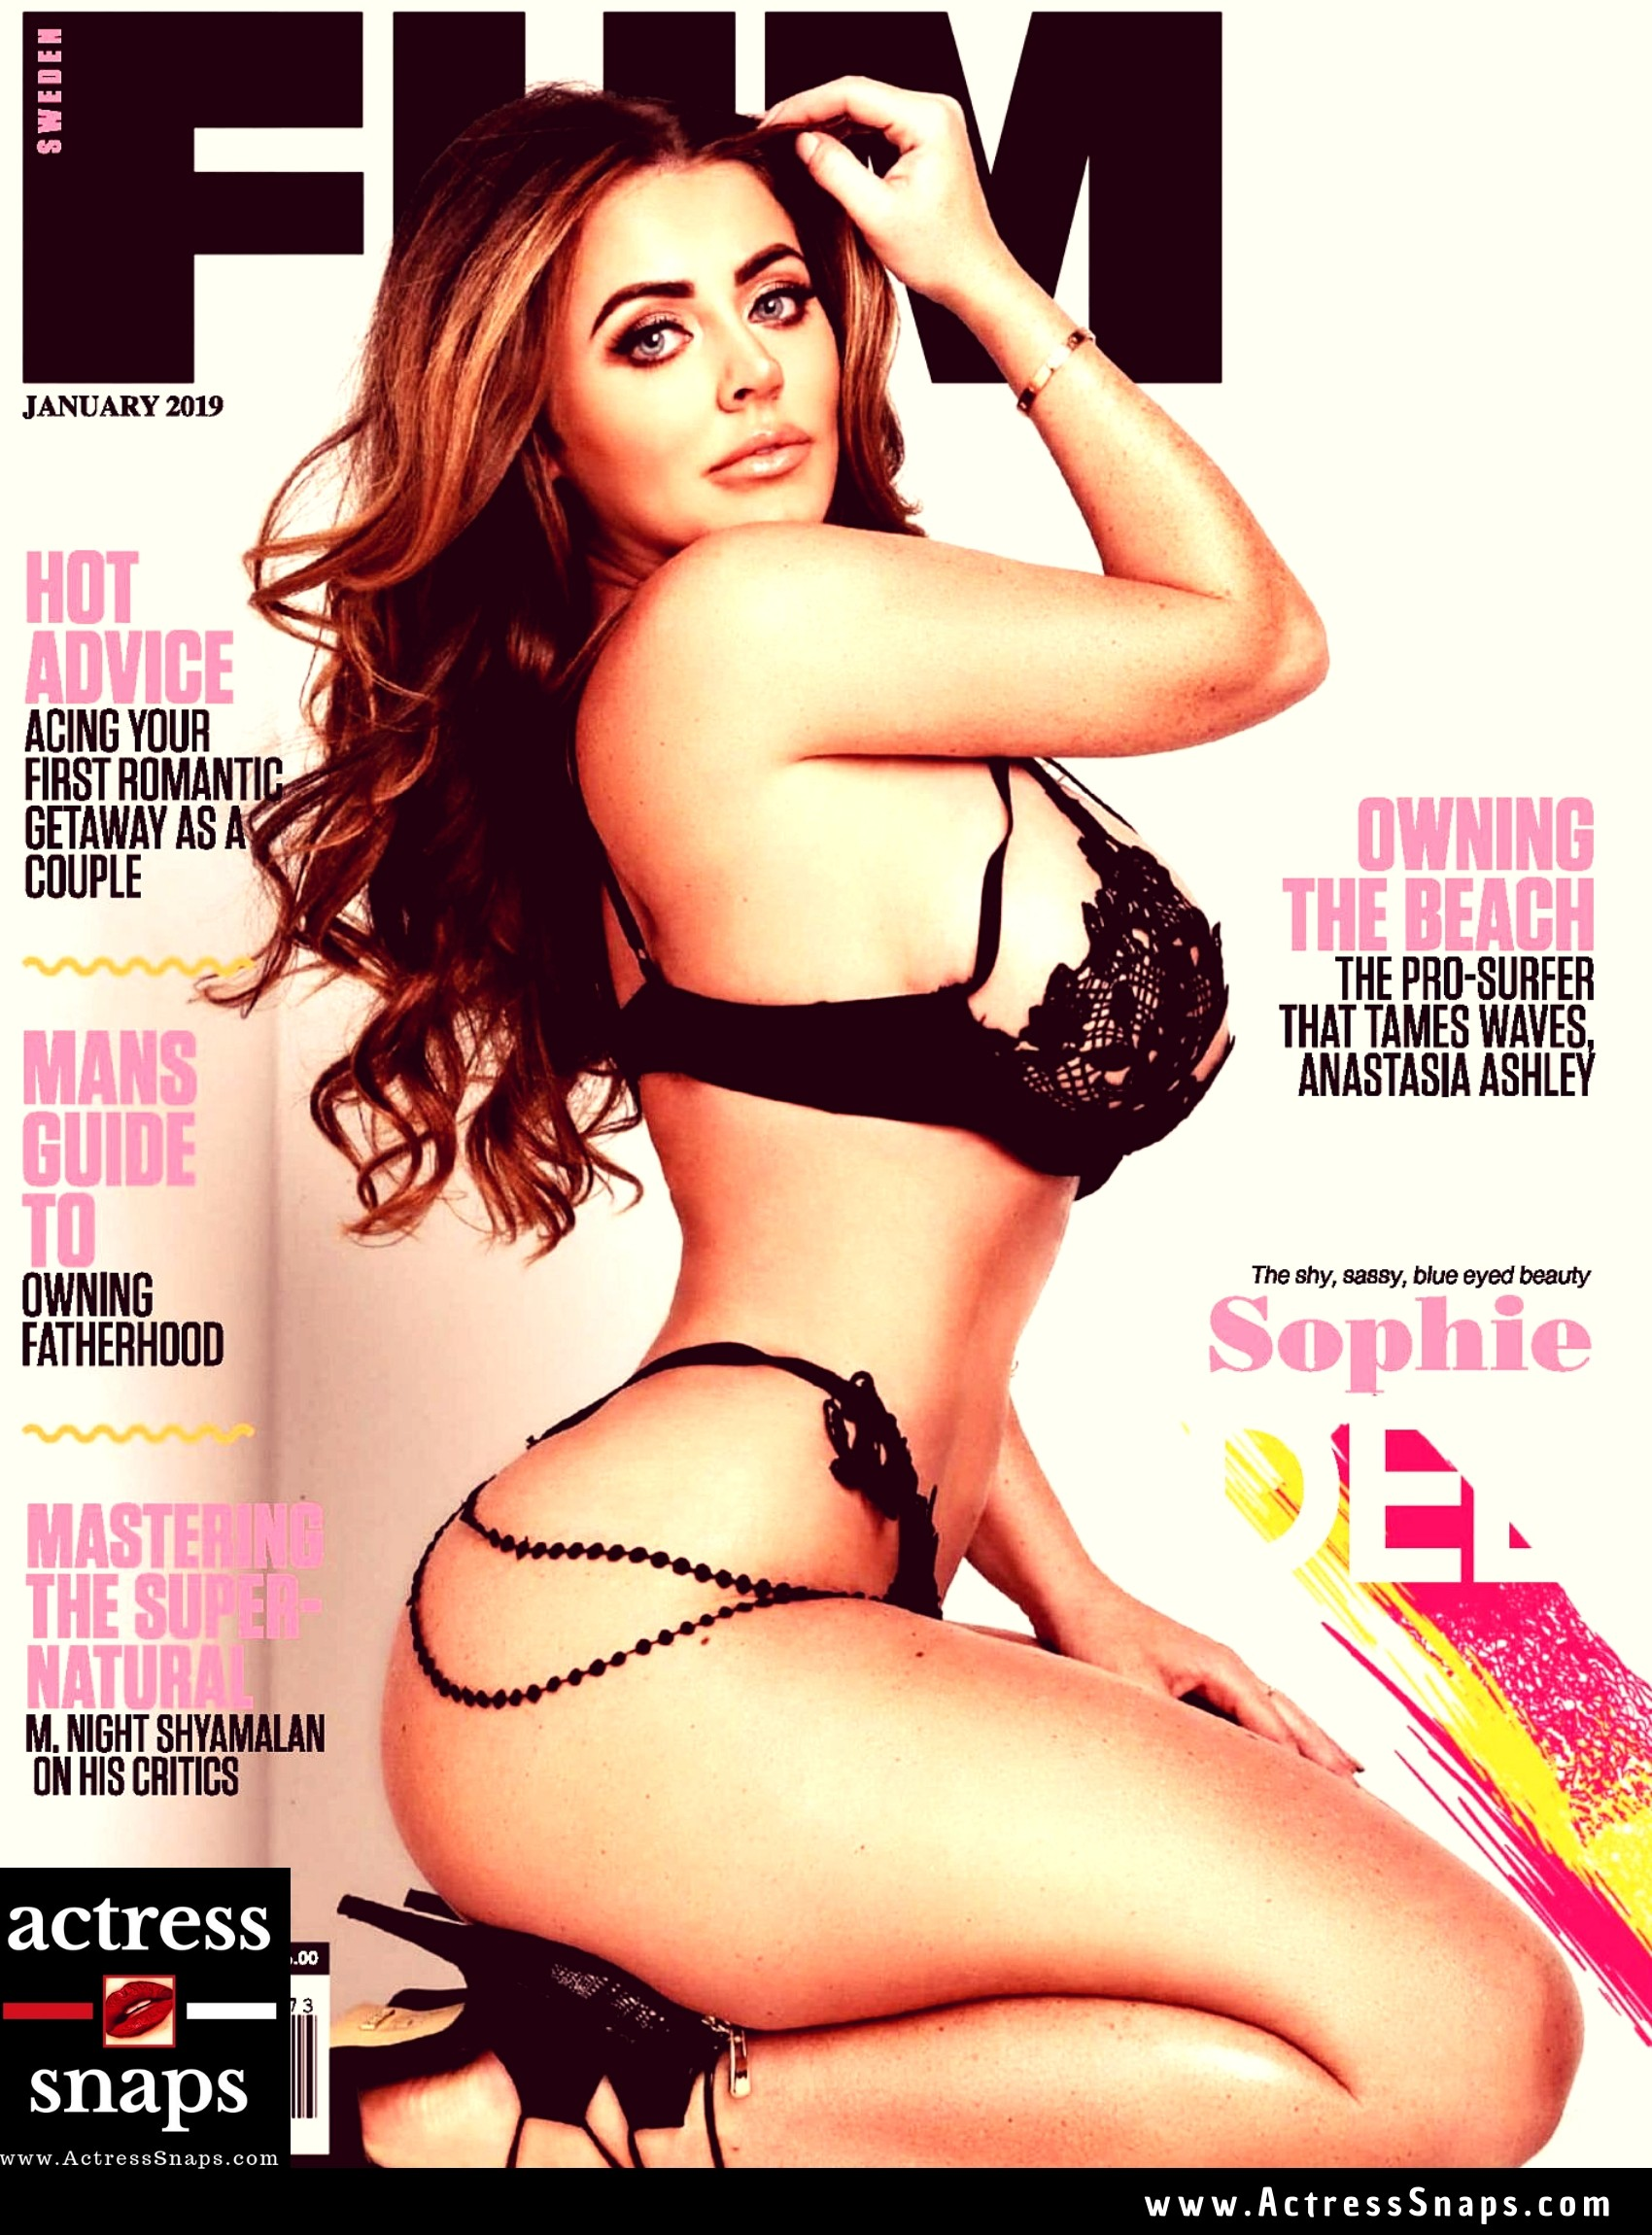 Sophie Dee - Sexy FHM Scans - Sexy Actress Pictures | Hot Actress Pictures - ActressSnaps.com